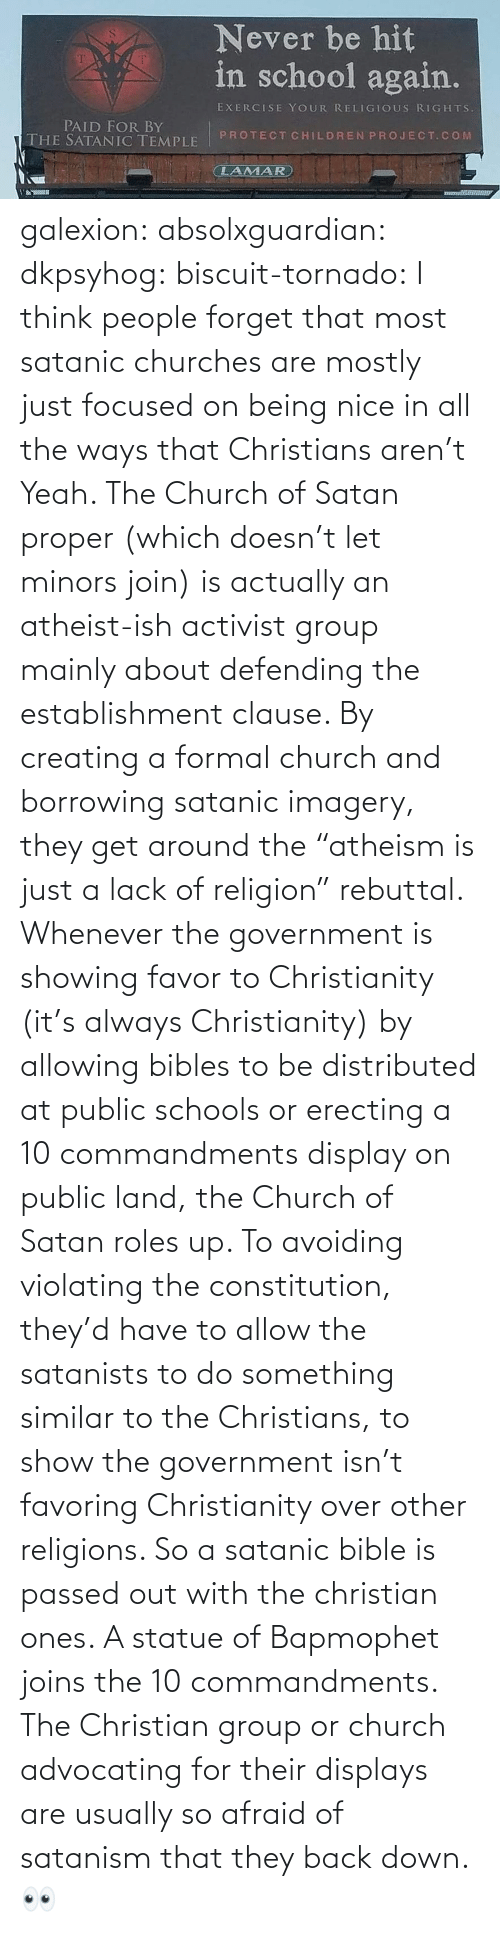 "creating a: galexion:  absolxguardian:  dkpsyhog:  biscuit-tornado:     I think people forget that most satanic churches are mostly just focused on being nice in all the ways that Christians aren't  Yeah. The Church of Satan proper (which doesn't let minors join) is actually an atheist-ish activist group mainly about defending the establishment clause. By creating a formal church and borrowing satanic imagery, they get around the ""atheism is just a lack of religion"" rebuttal. Whenever the government is showing favor to Christianity (it's always Christianity) by allowing bibles to be distributed at public schools or erecting a 10 commandments display on public land, the Church of Satan roles up. To avoiding violating the constitution, they'd have to allow the satanists to do something similar to the Christians, to show the government isn't favoring Christianity over other religions. So a satanic bible is passed out with the christian ones. A statue of Bapmophet joins the 10 commandments. The Christian group or church advocating for their displays are usually so afraid of satanism that they back down.   👀"